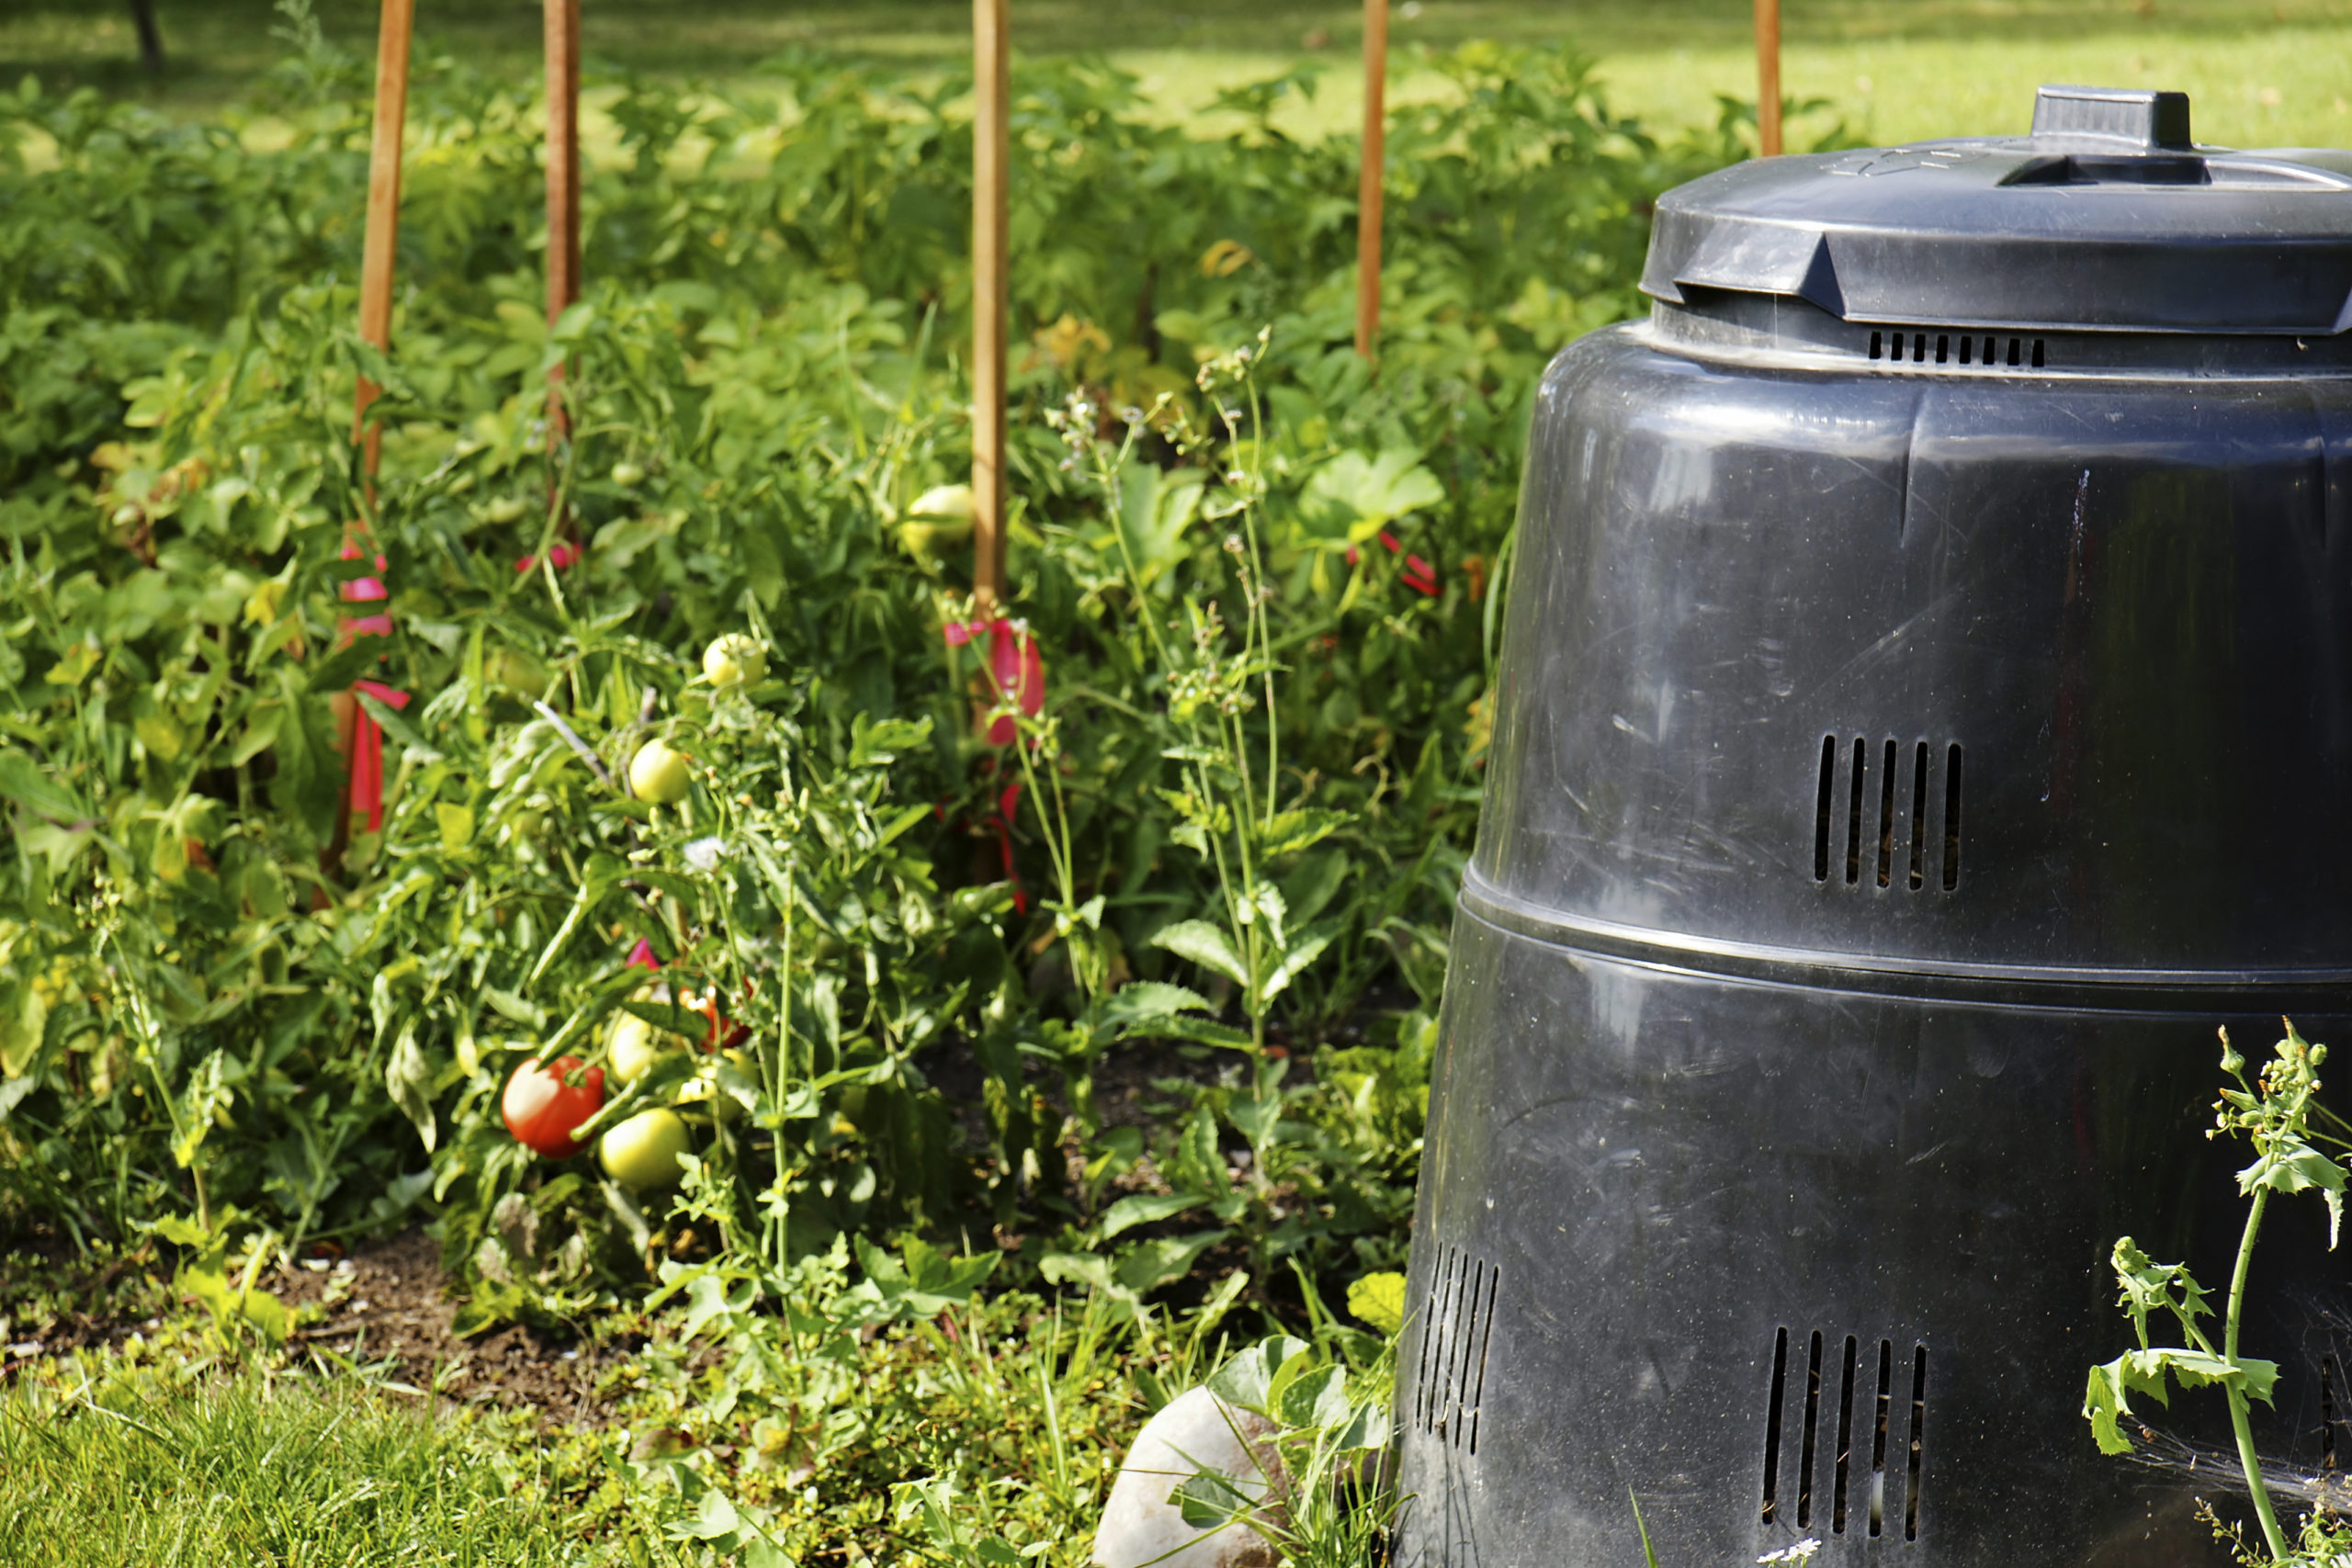 Compost is used to make compost tea.